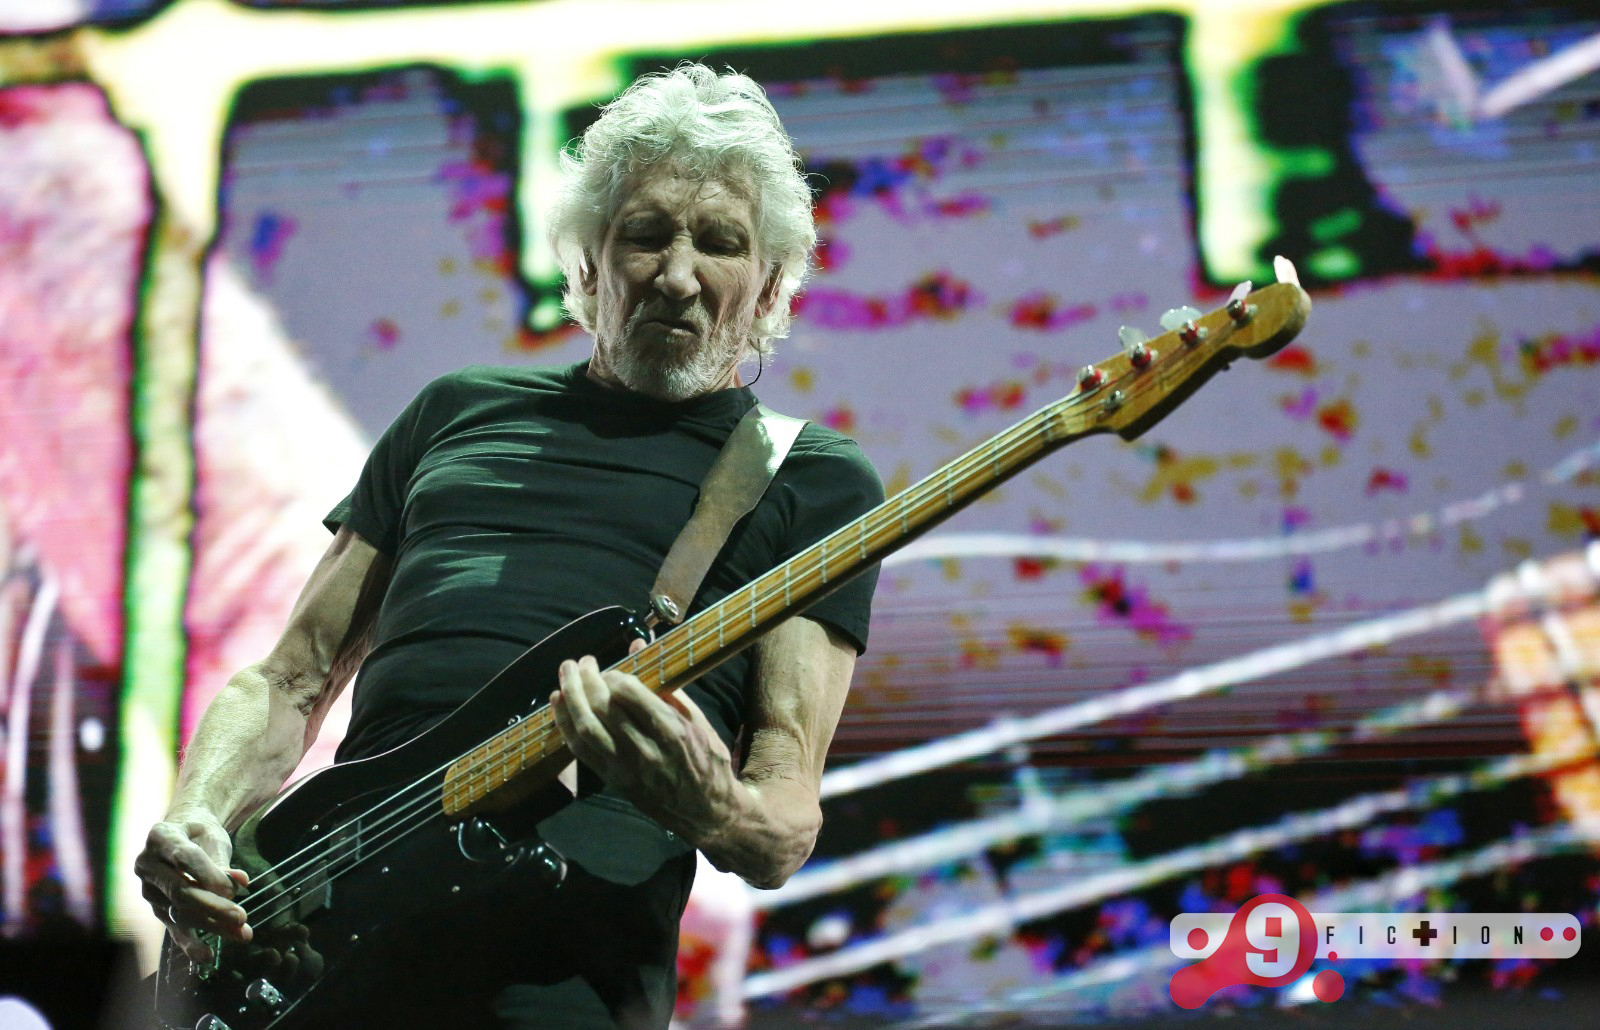 Lags Fotograma_Roger Waters_Nine Fiction (15)